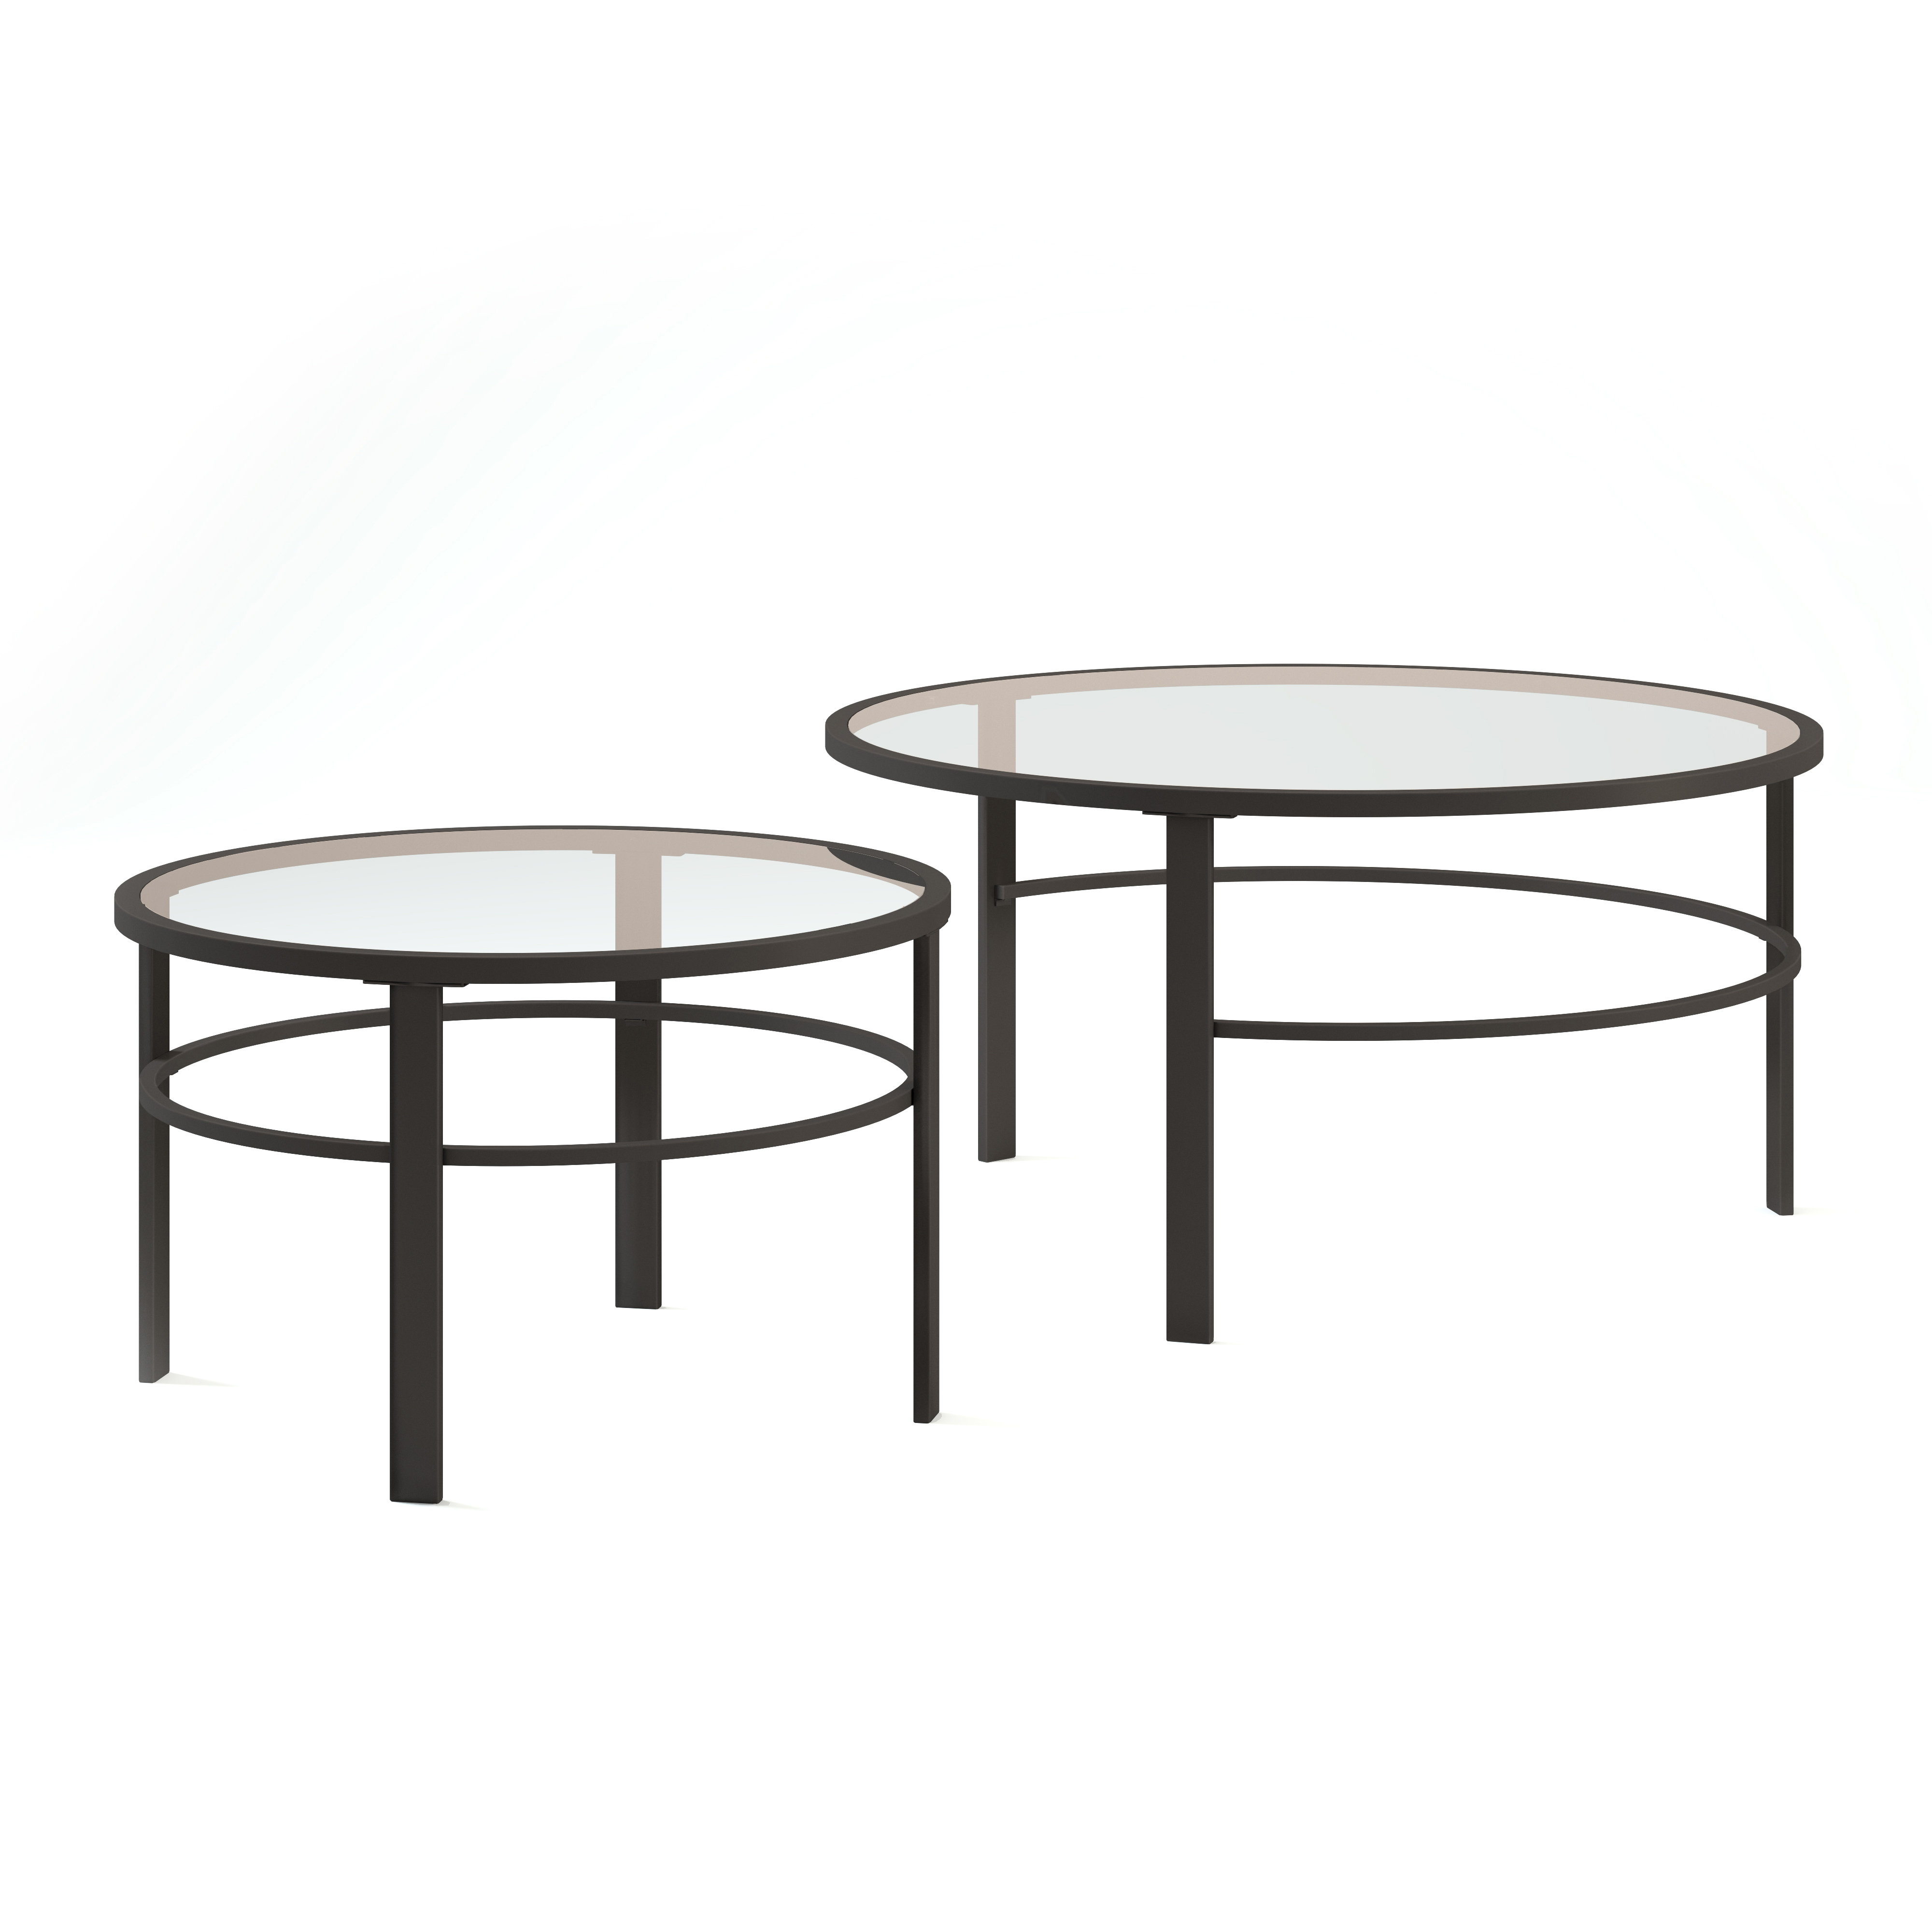 Famous Furniture Of America Crescent Dark Cherry Glass Top Oval Coffee Tables Within Modern & Contemporary Small Bunching Coffee Tables (View 19 of 20)